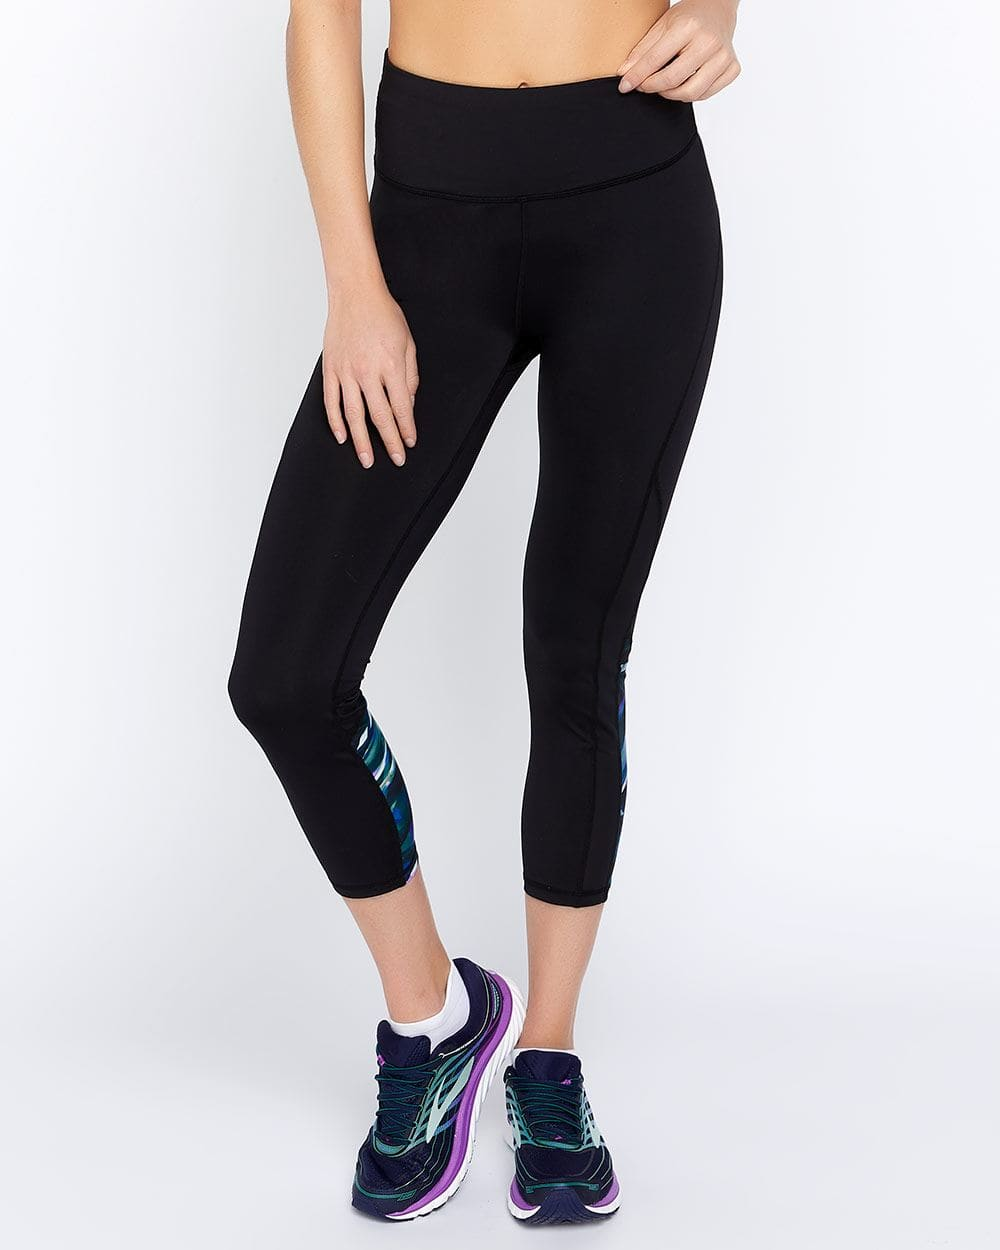 Hyba Running Legging with Mesh